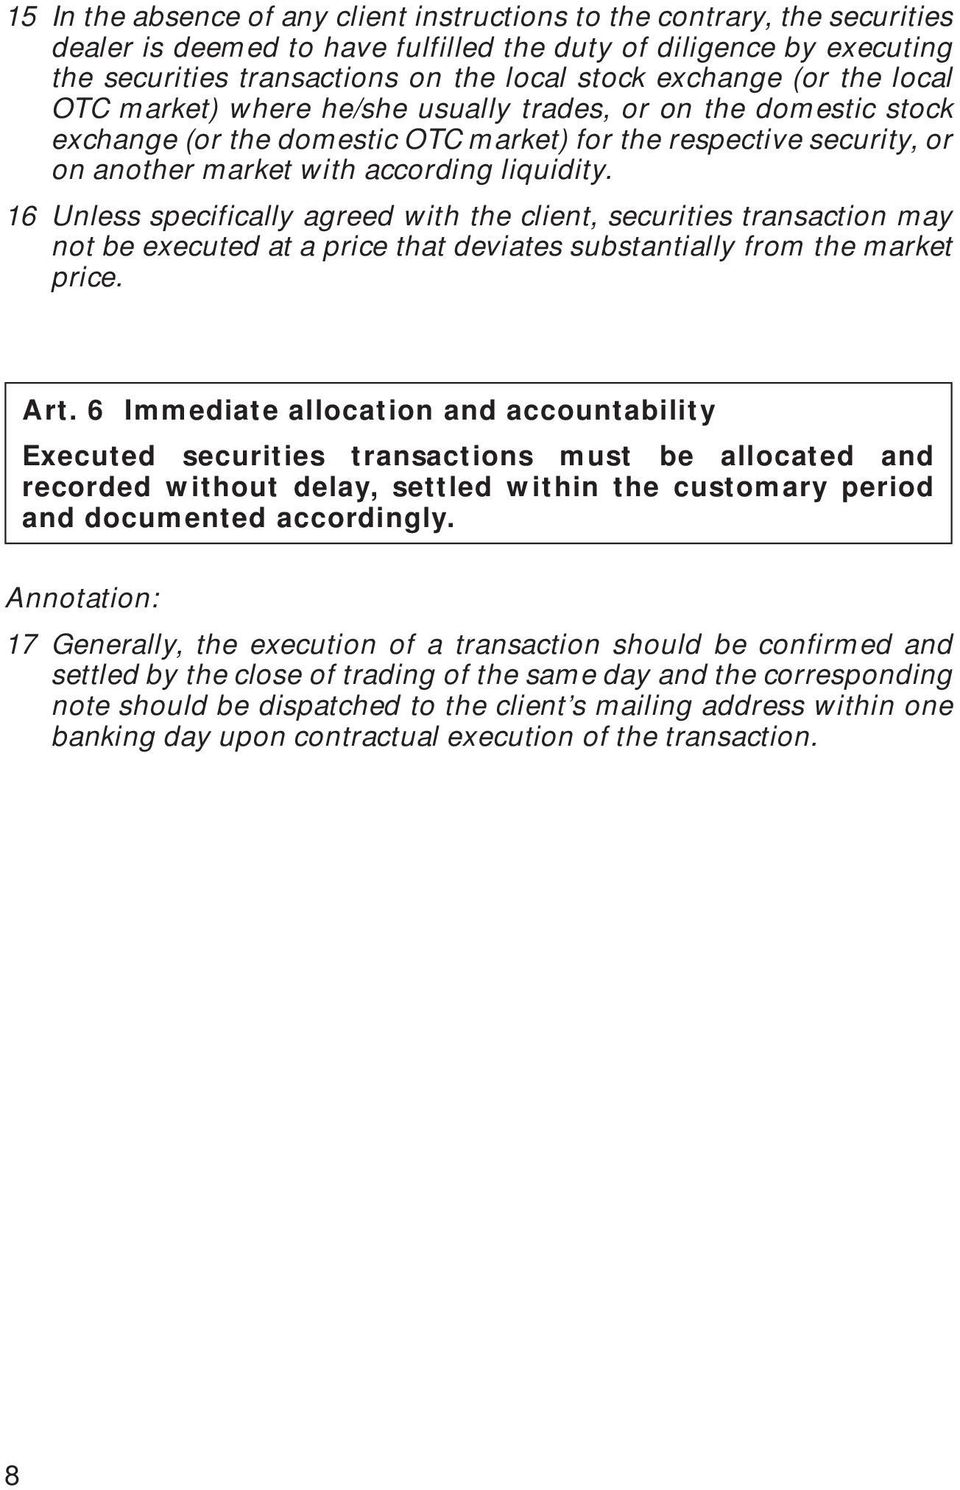 liquidity. 16 Unless specifically agreed with the client, securities transaction may not be executed at a price that deviates substantially from the market price. Art.